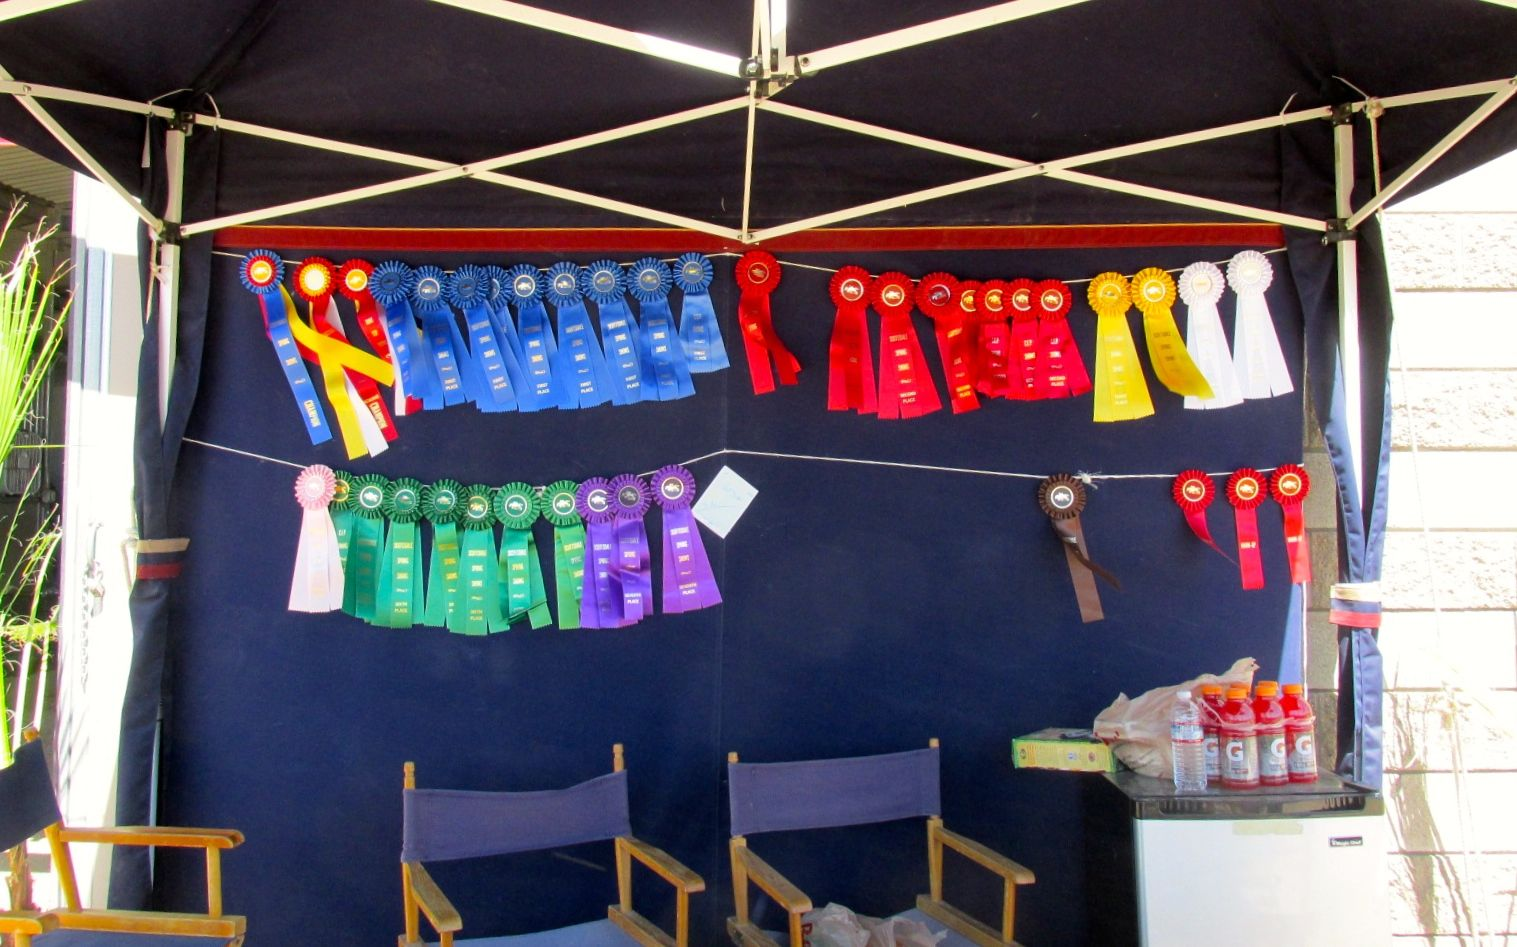 ribbons on display